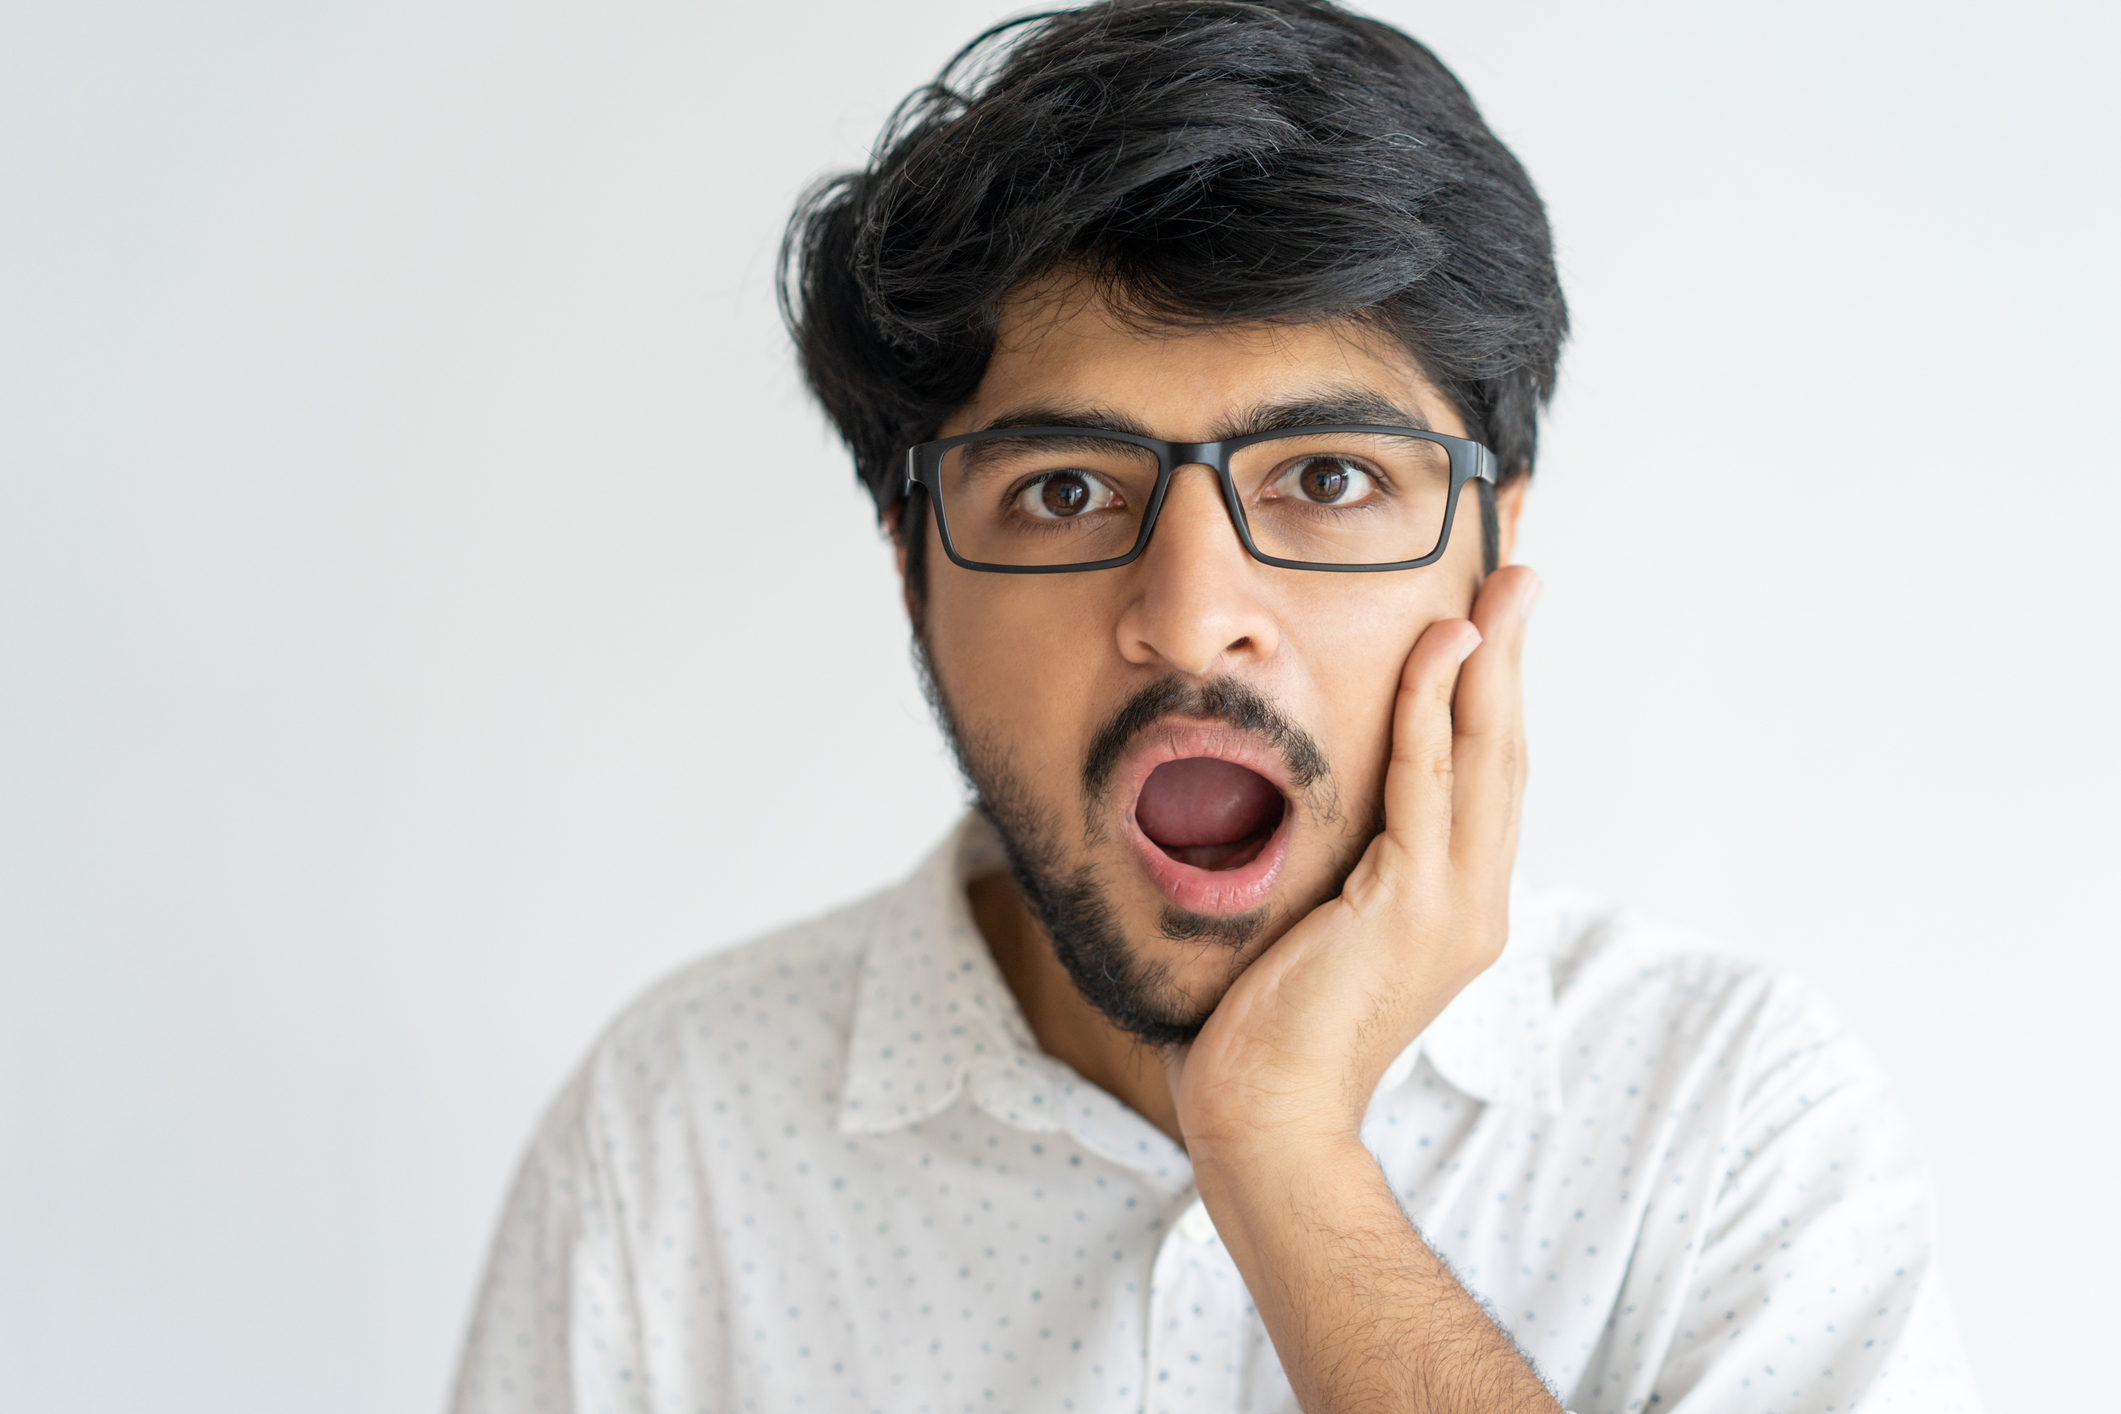 Shocked man with open mouth